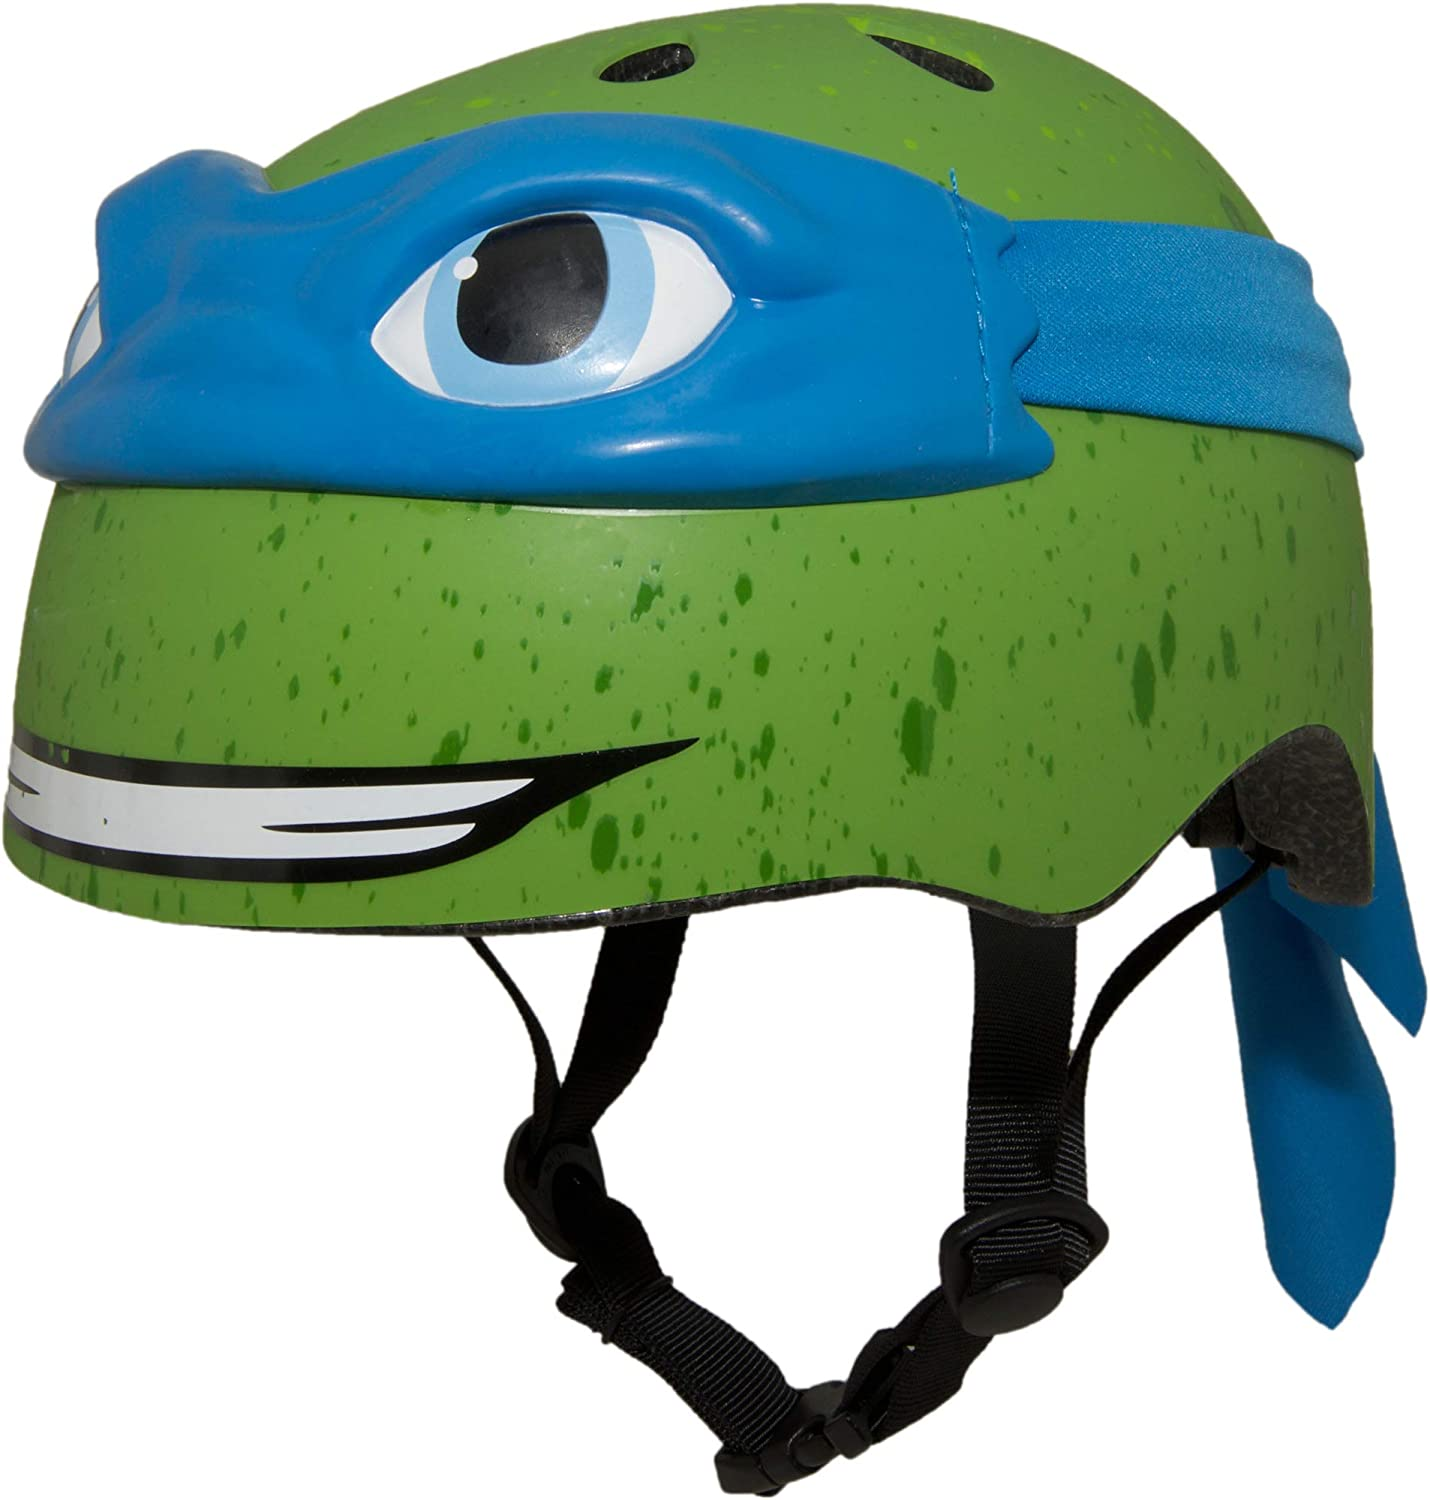 Nickelodeon Bell Teenage Mutant Ninja Turtles 3D Bike Helmets